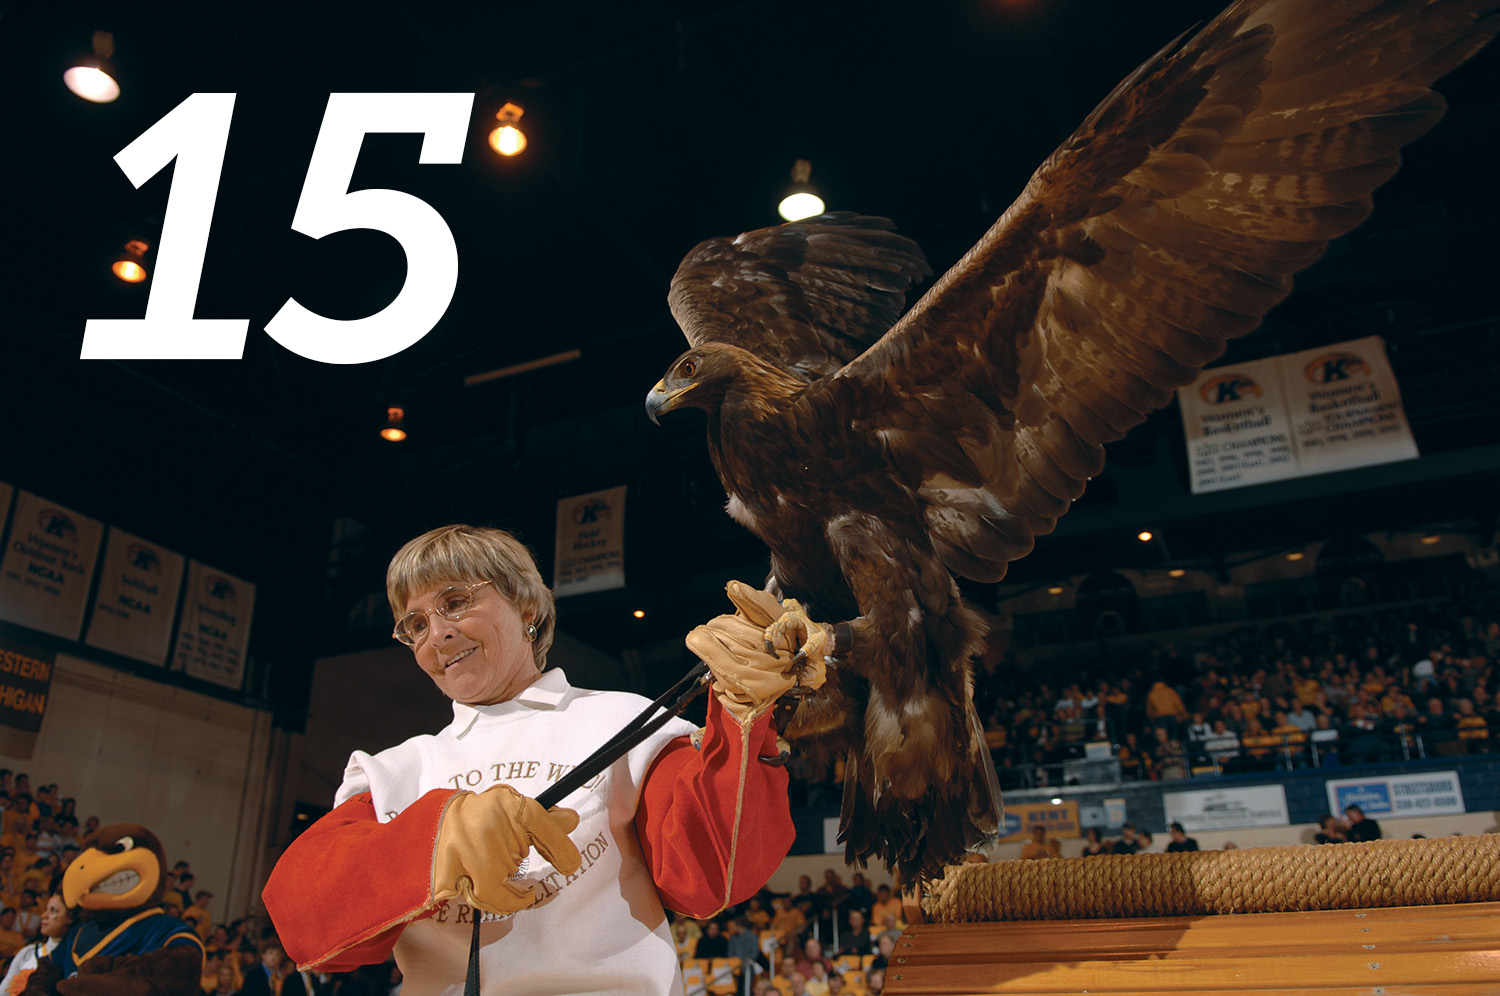 Mona Rutger and rehabilitated eagle at a men's basketball game in 2008